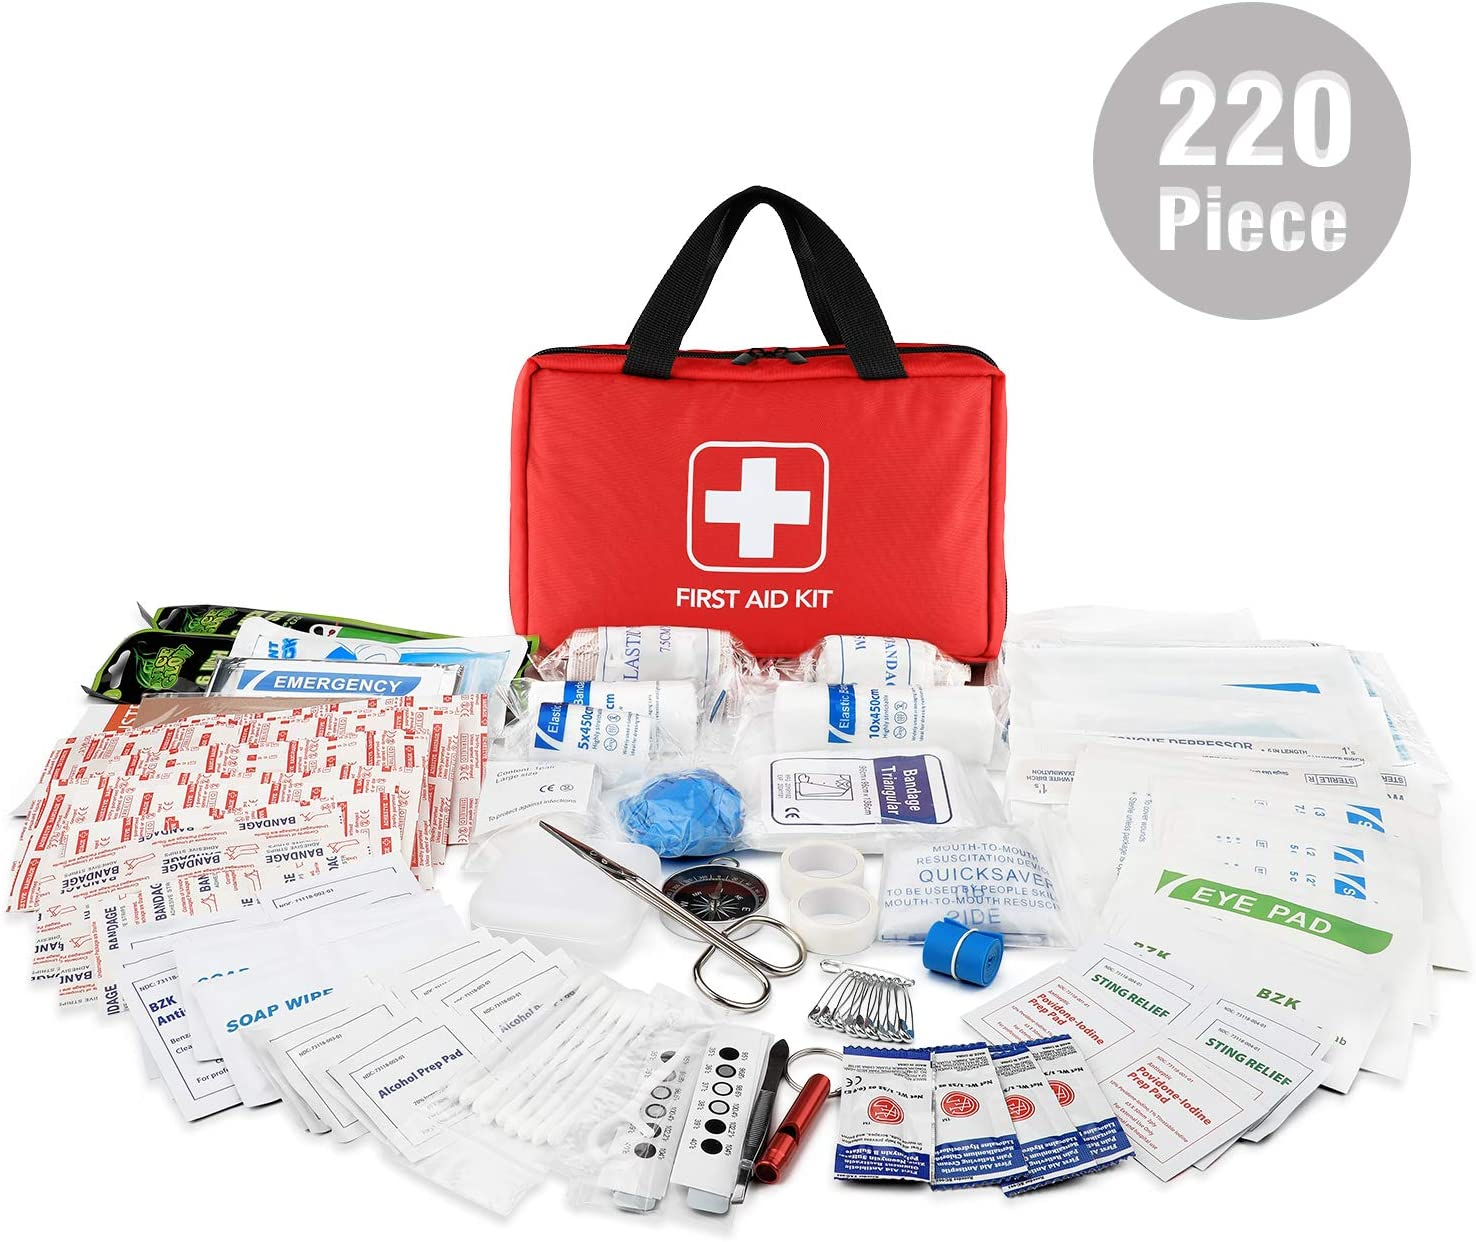 Workplace Boating Travel Vehicle Outdoor Home Perfect for Car Hiking Risen First Aid Kit 220 Pieces Compact Medical Emergency Survival Kit Camping